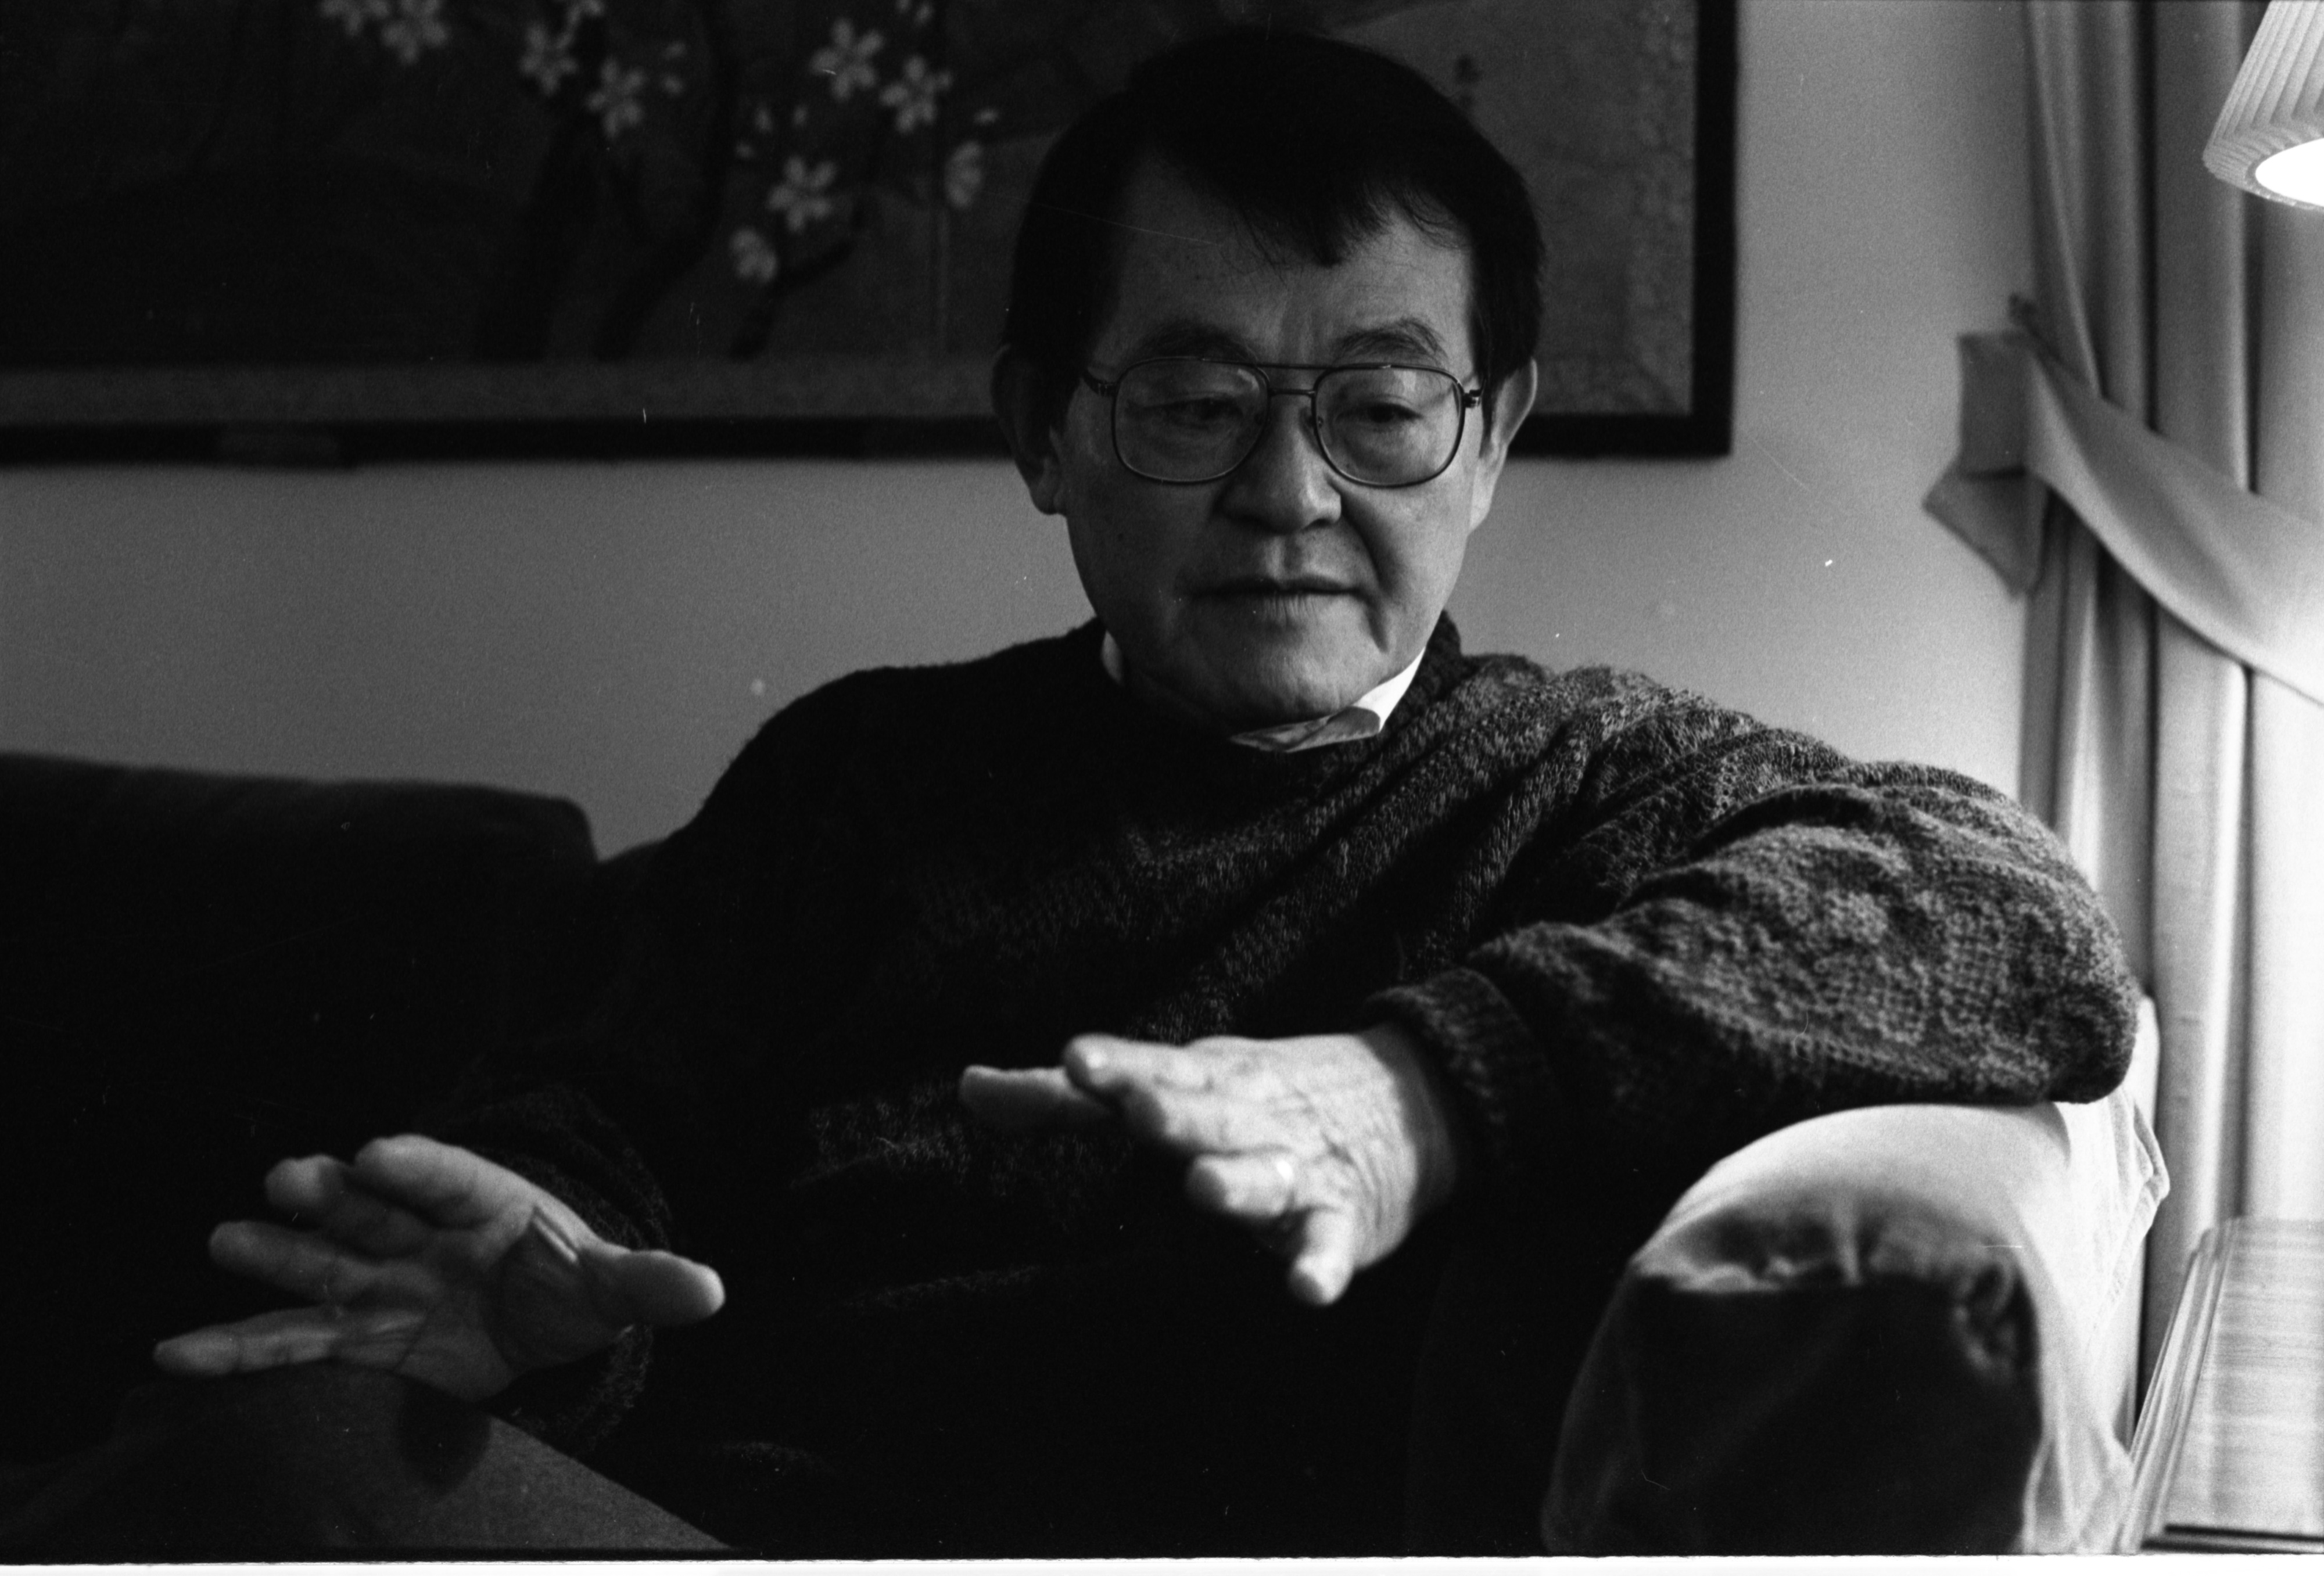 Dr. Yuzuru Takeshita, Professor at U-M & Japanese Internment Camp Survivor, Talks About His Experiences, December 8, 1991 image